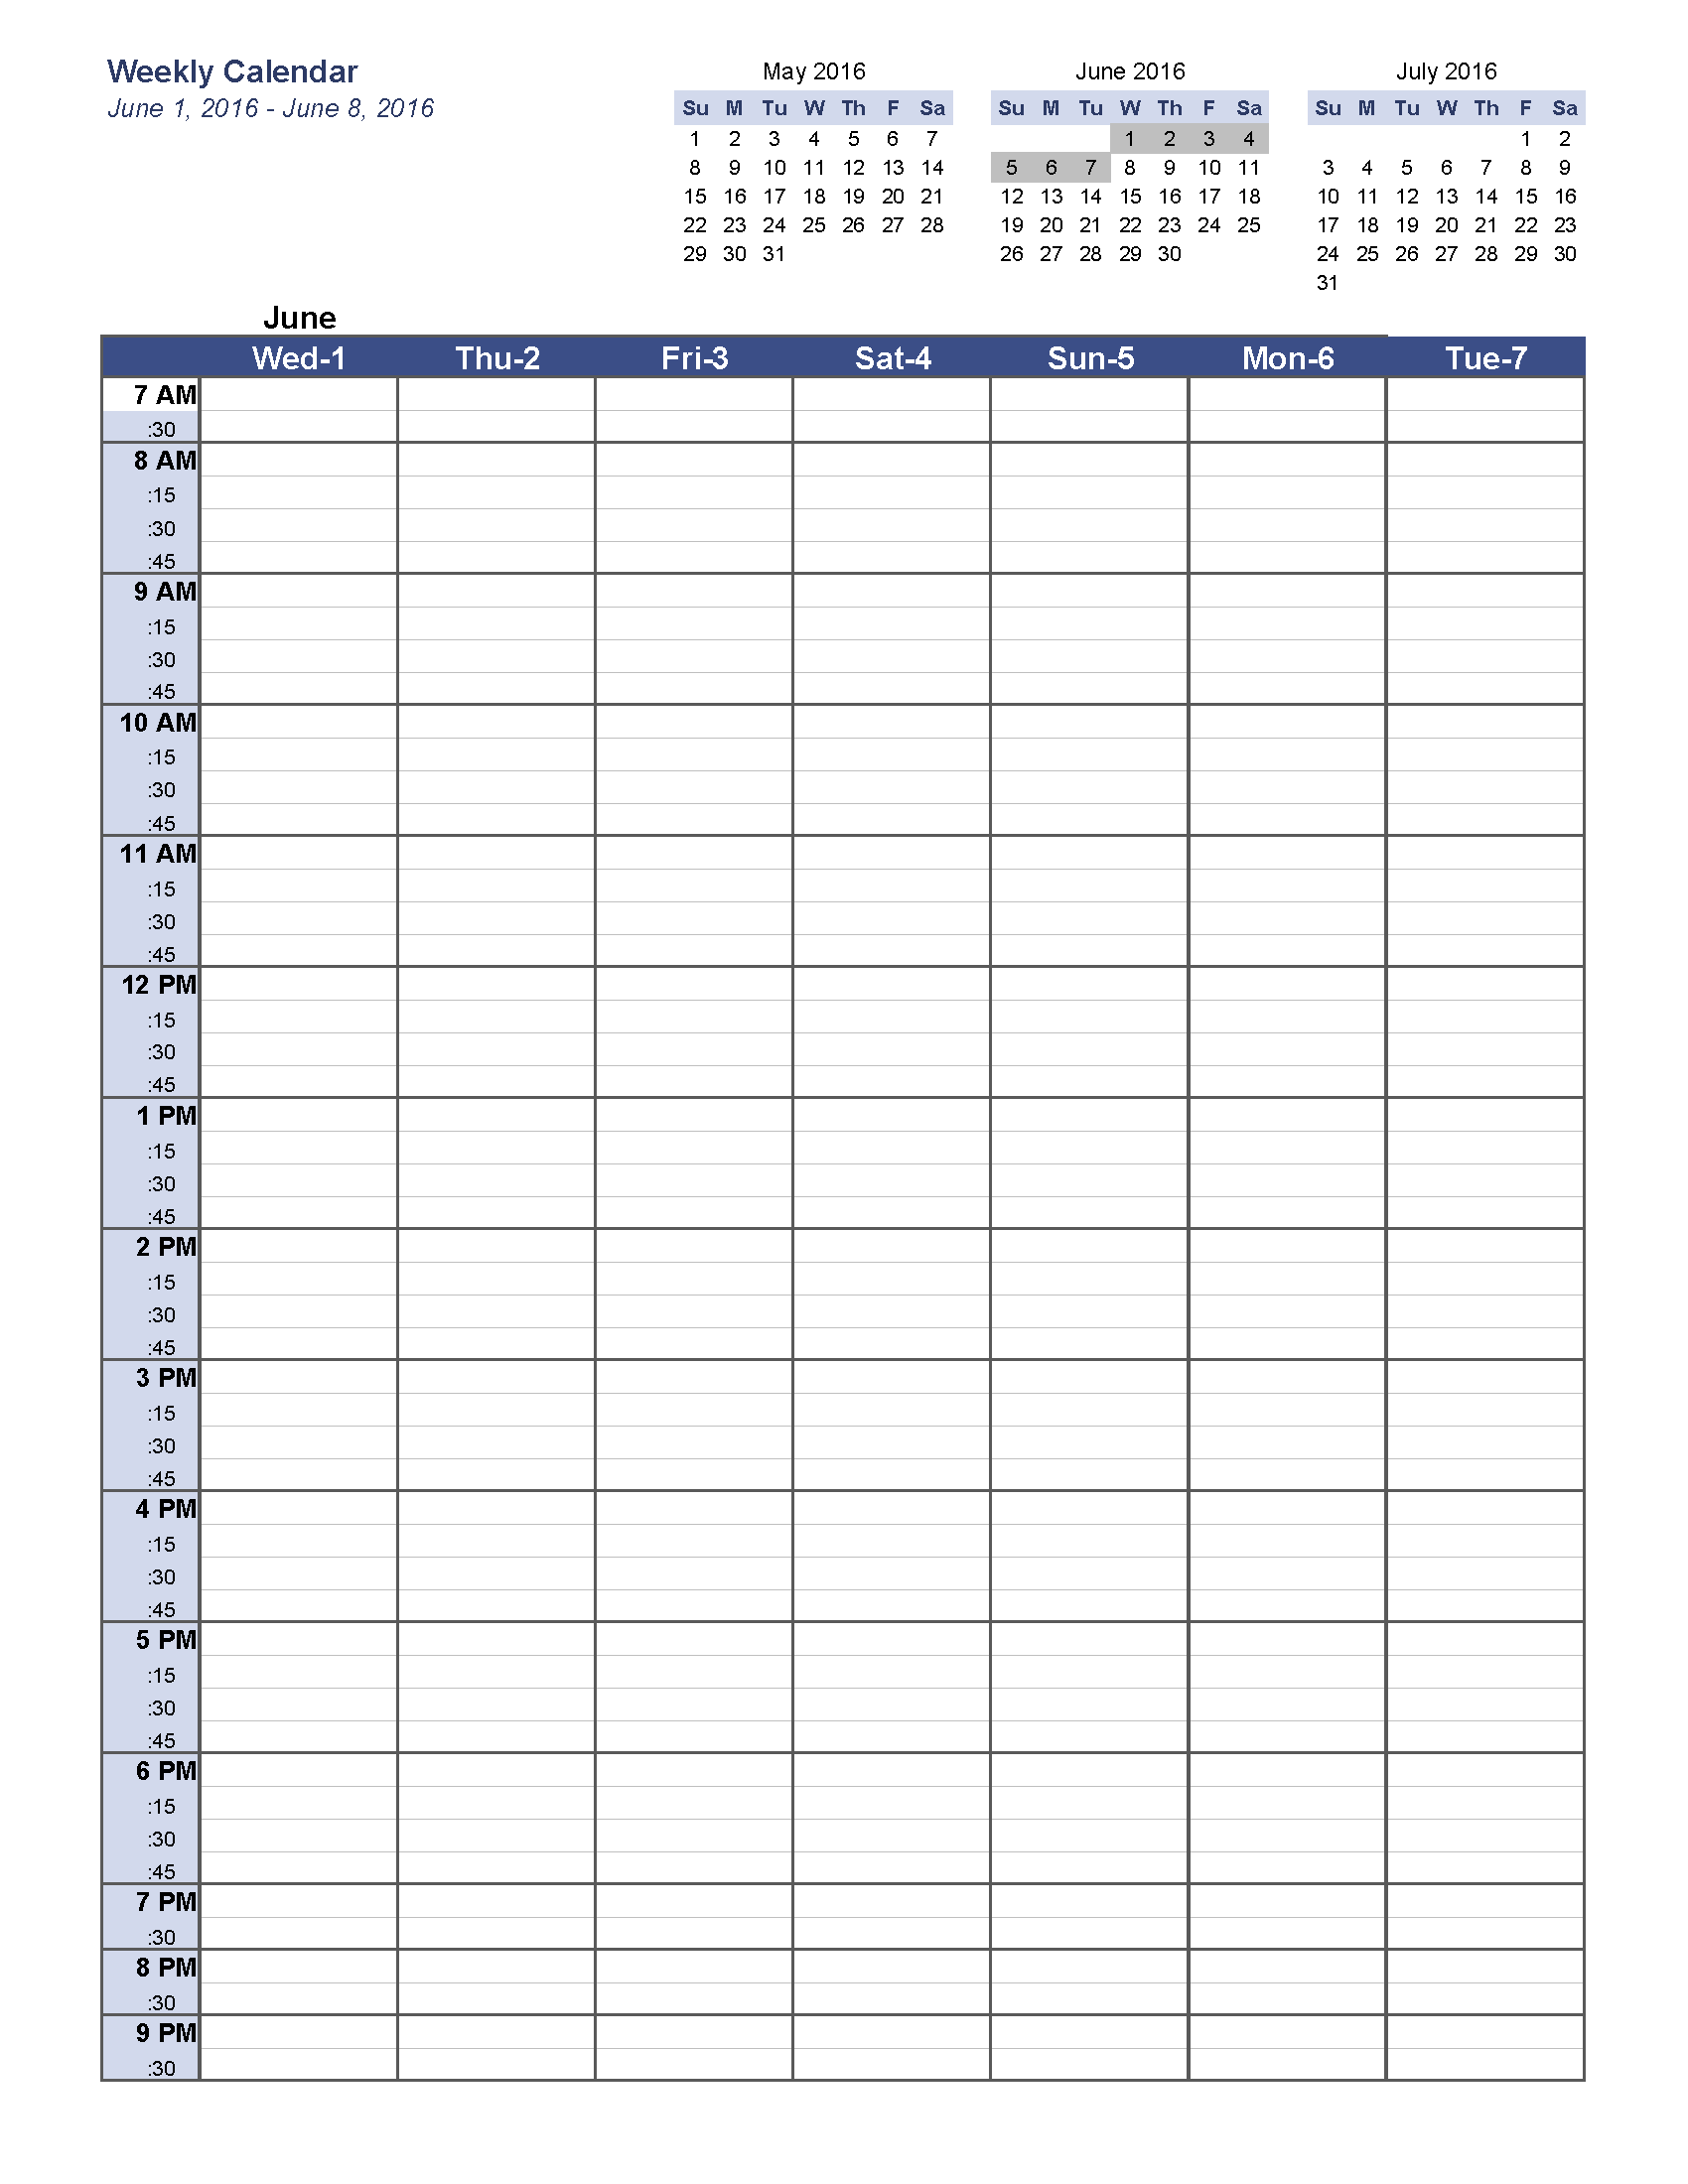 Weekly Calendar Template : June weekly calendar blank printable templates